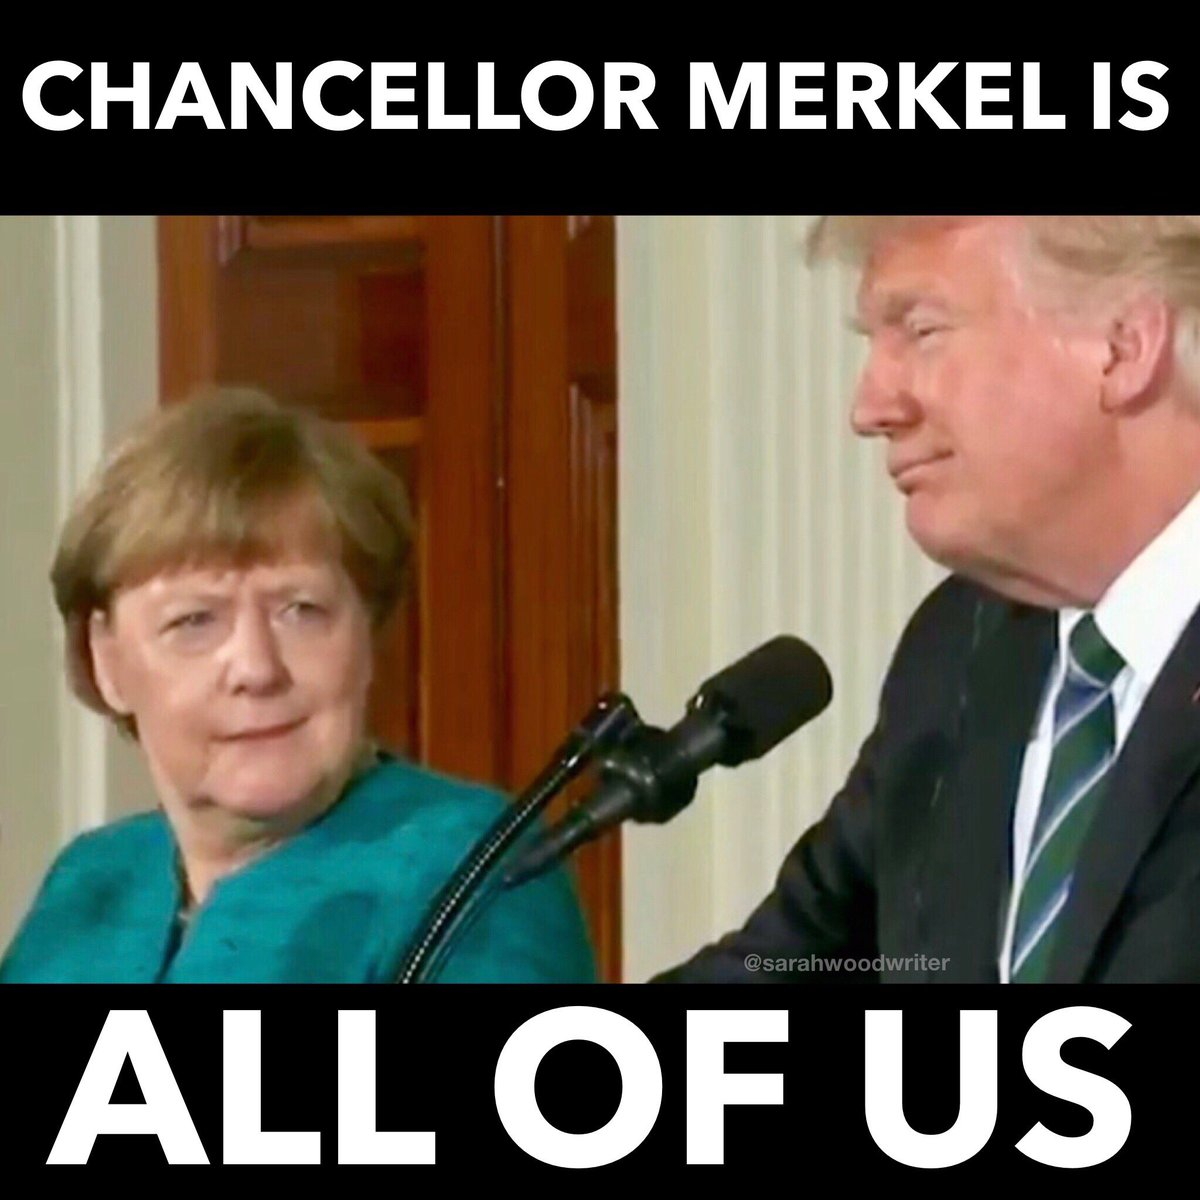 Viral News From Germany: Angela Merkel Looks Bemused By Donald Trump's Wiretapping